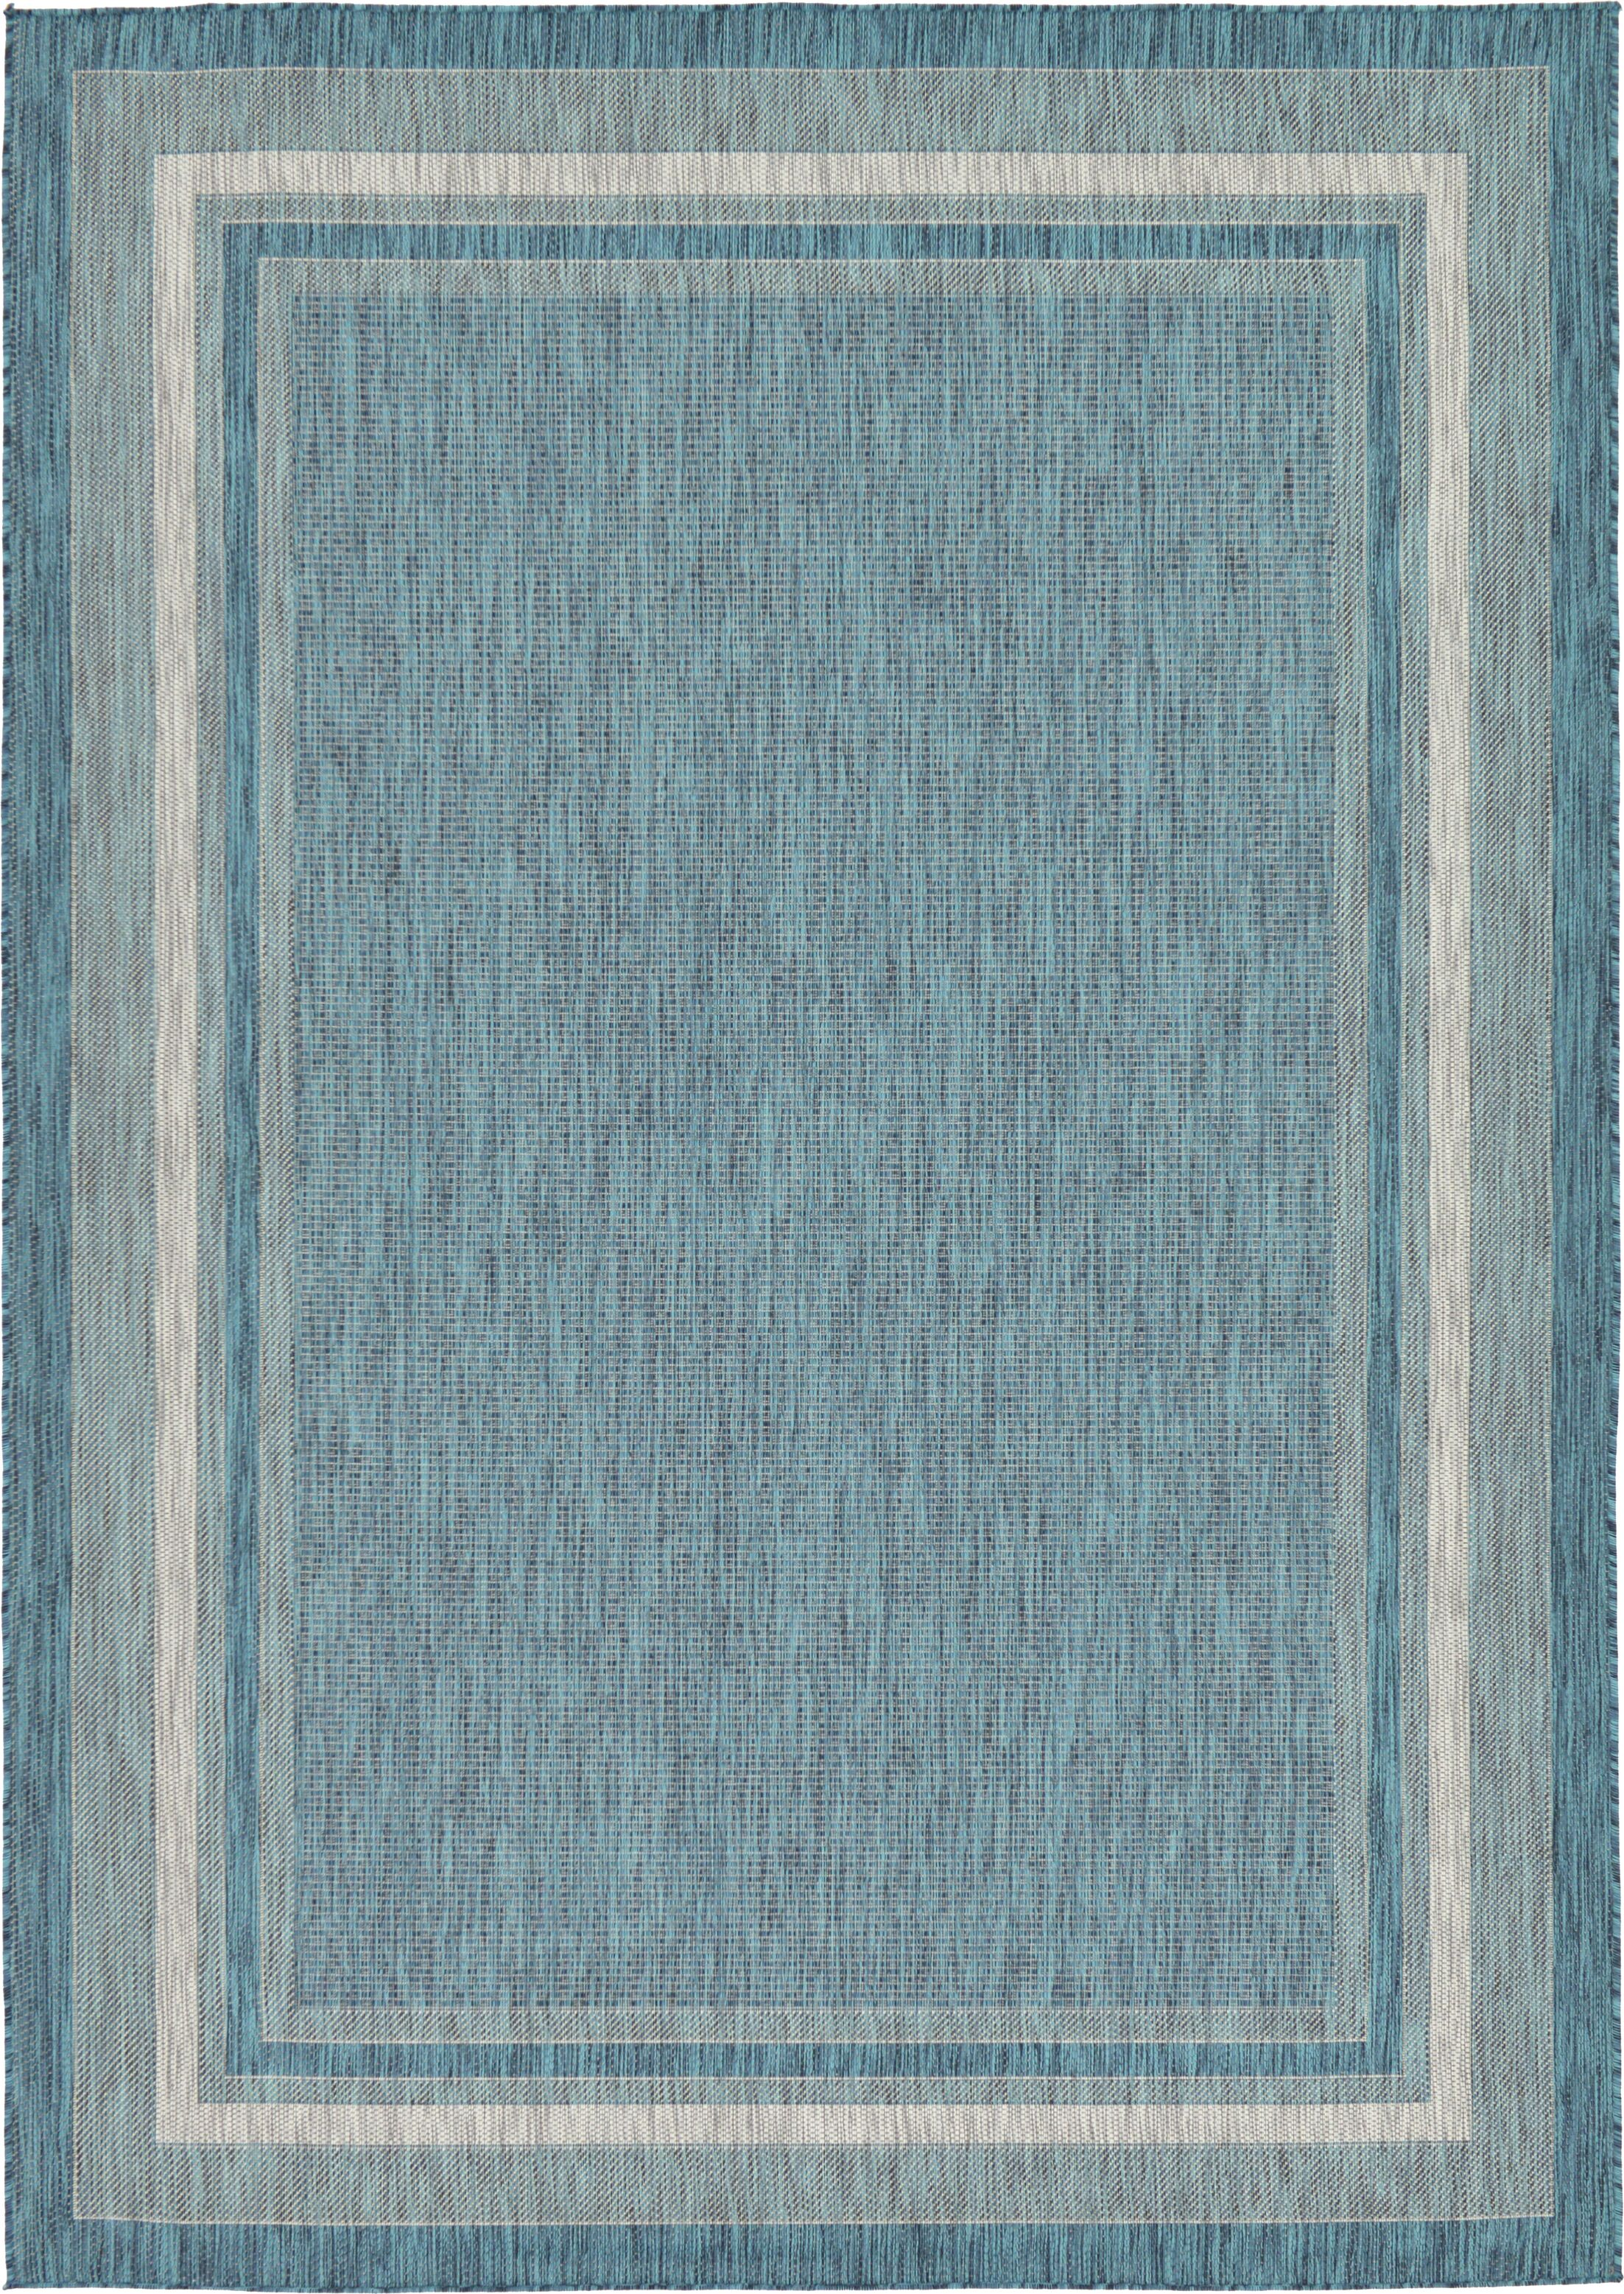 Keira Teal Outdoor Area Rug Rug Size: Rectangle 7' x 10'